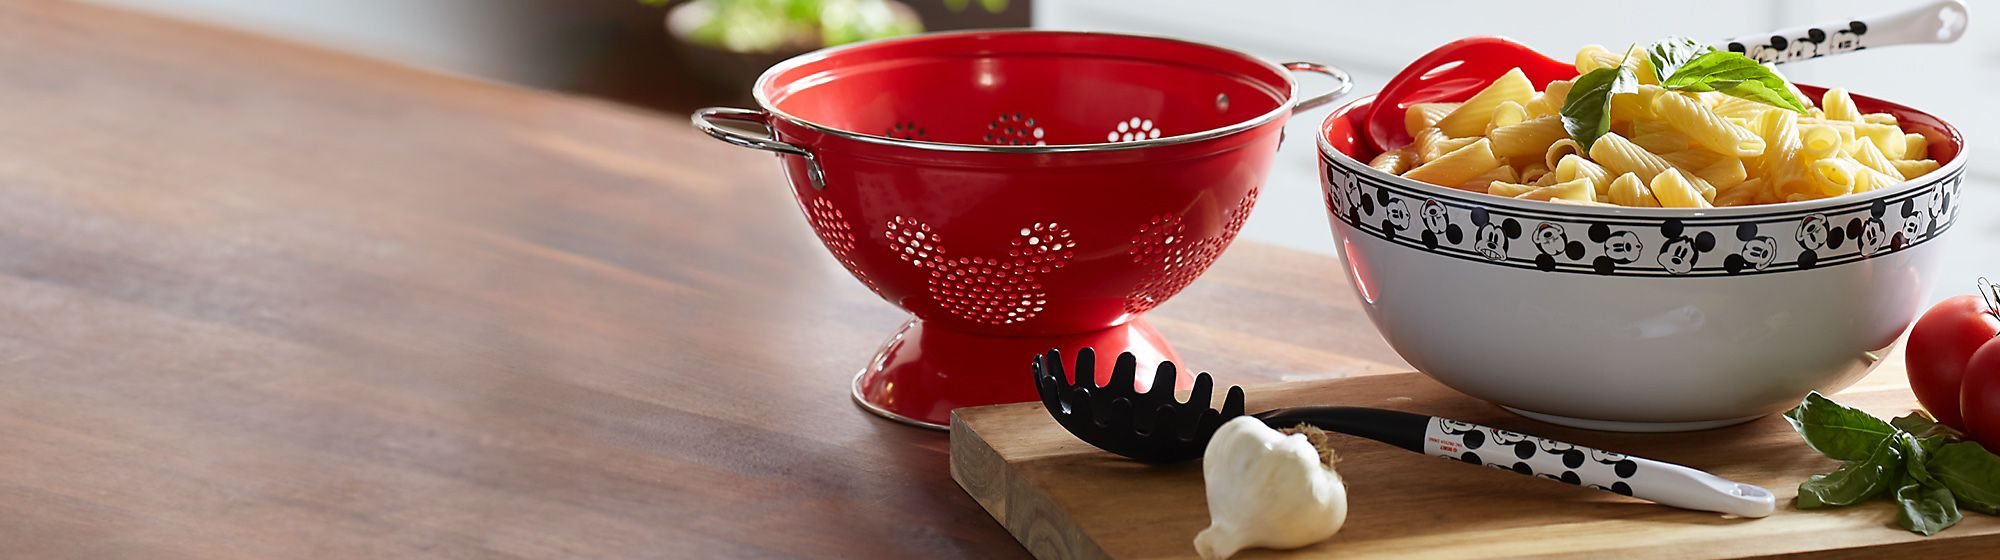 Pizza Pasta Party Make it a Bella Notte with new cookware from Disney Eats